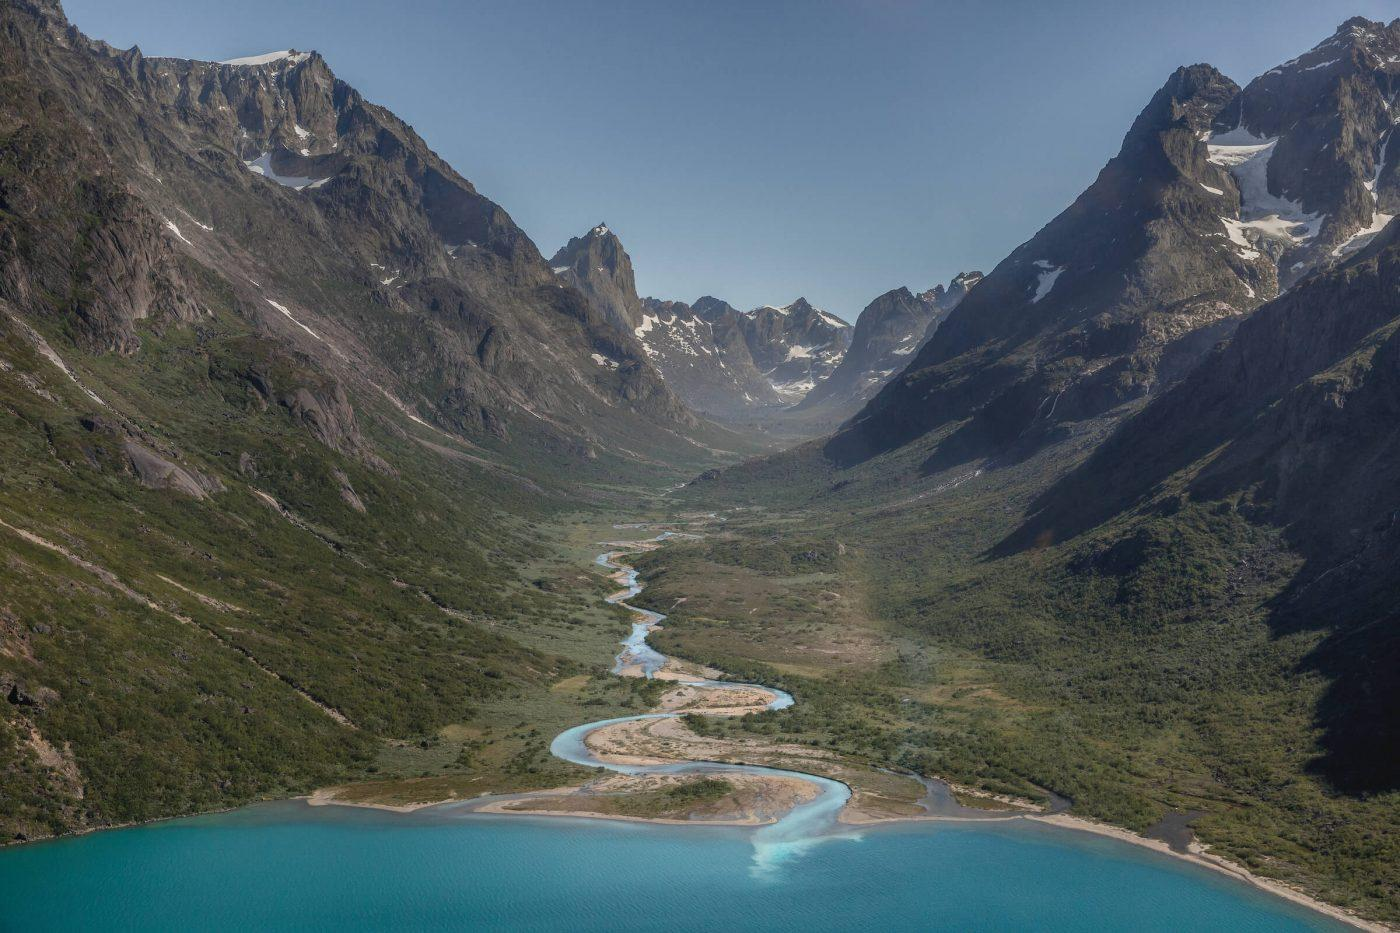 The Qingua valley and the river running into the almost fjord-like Tasersuaq lake near Nanortalik in South Greenland. Photo by Mads Pihl.